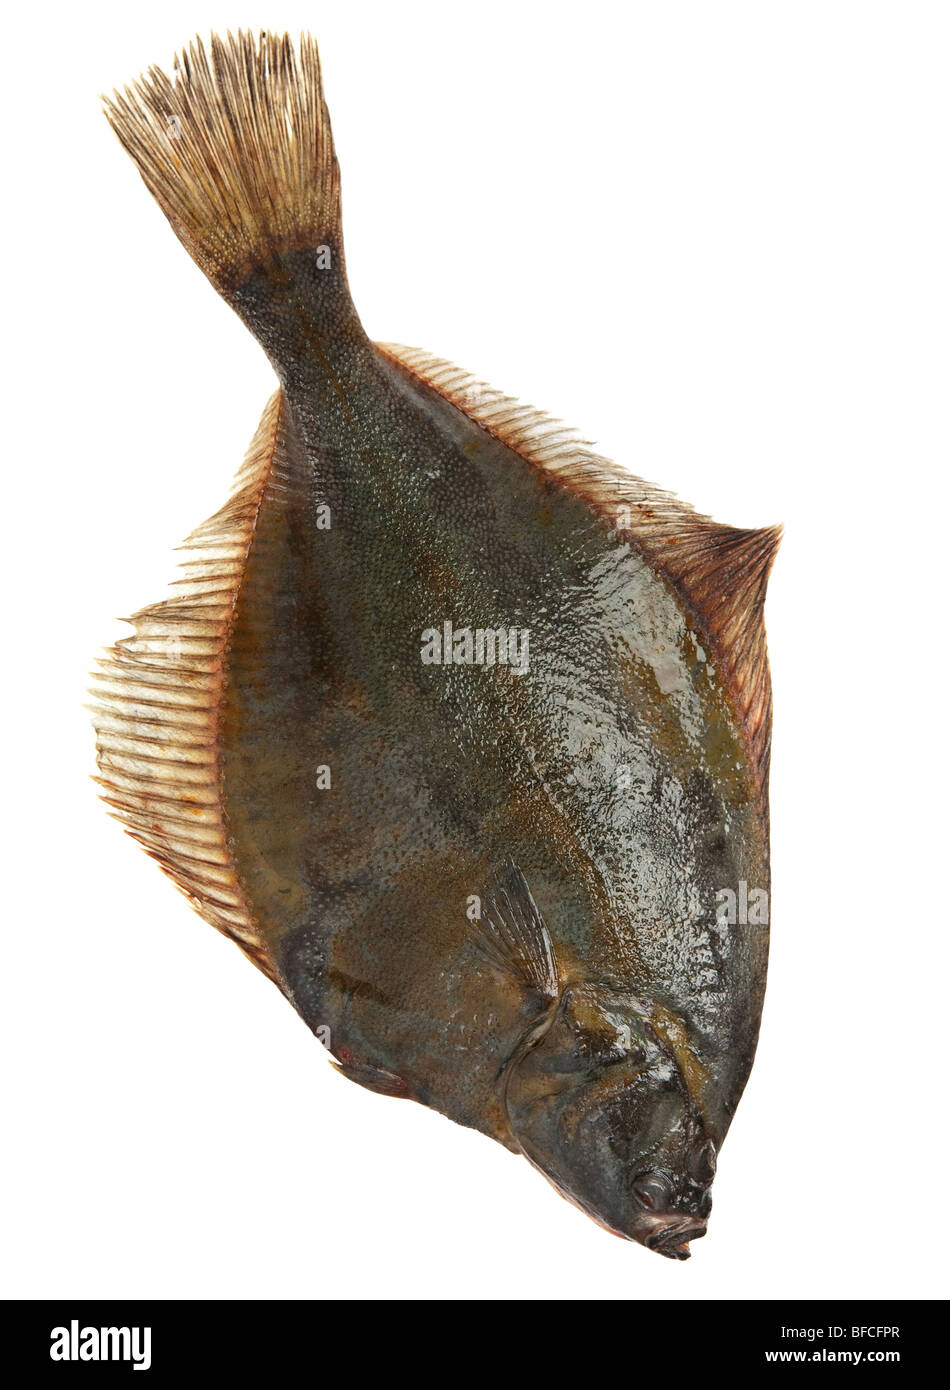 Raw fresh flatfish fish detail on white - Stock Image